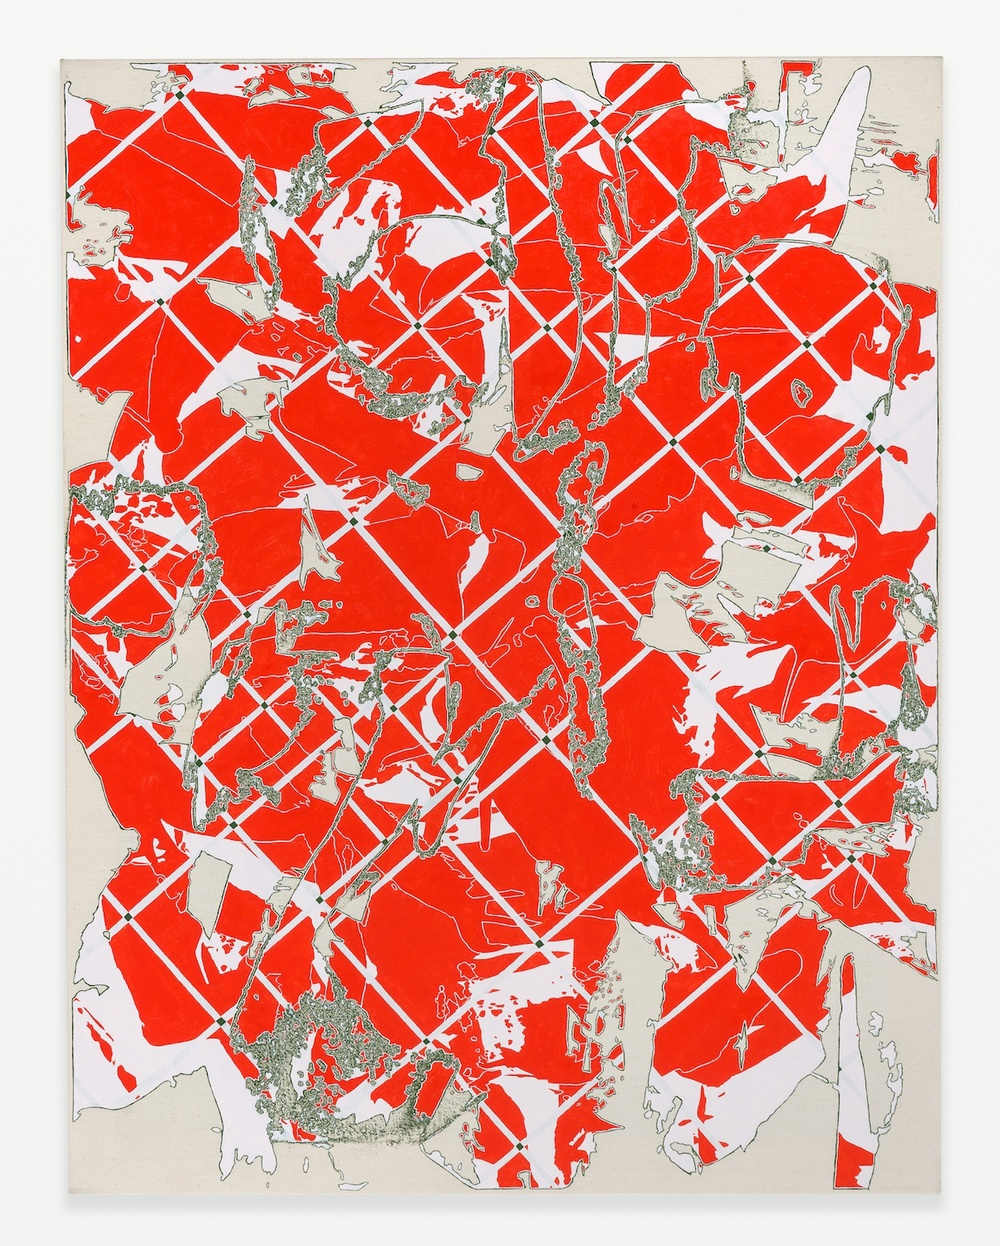 Zak Prekop  Two Grids (Red with Green)  2014 Oil on canvas 35h x 27w in ZP304